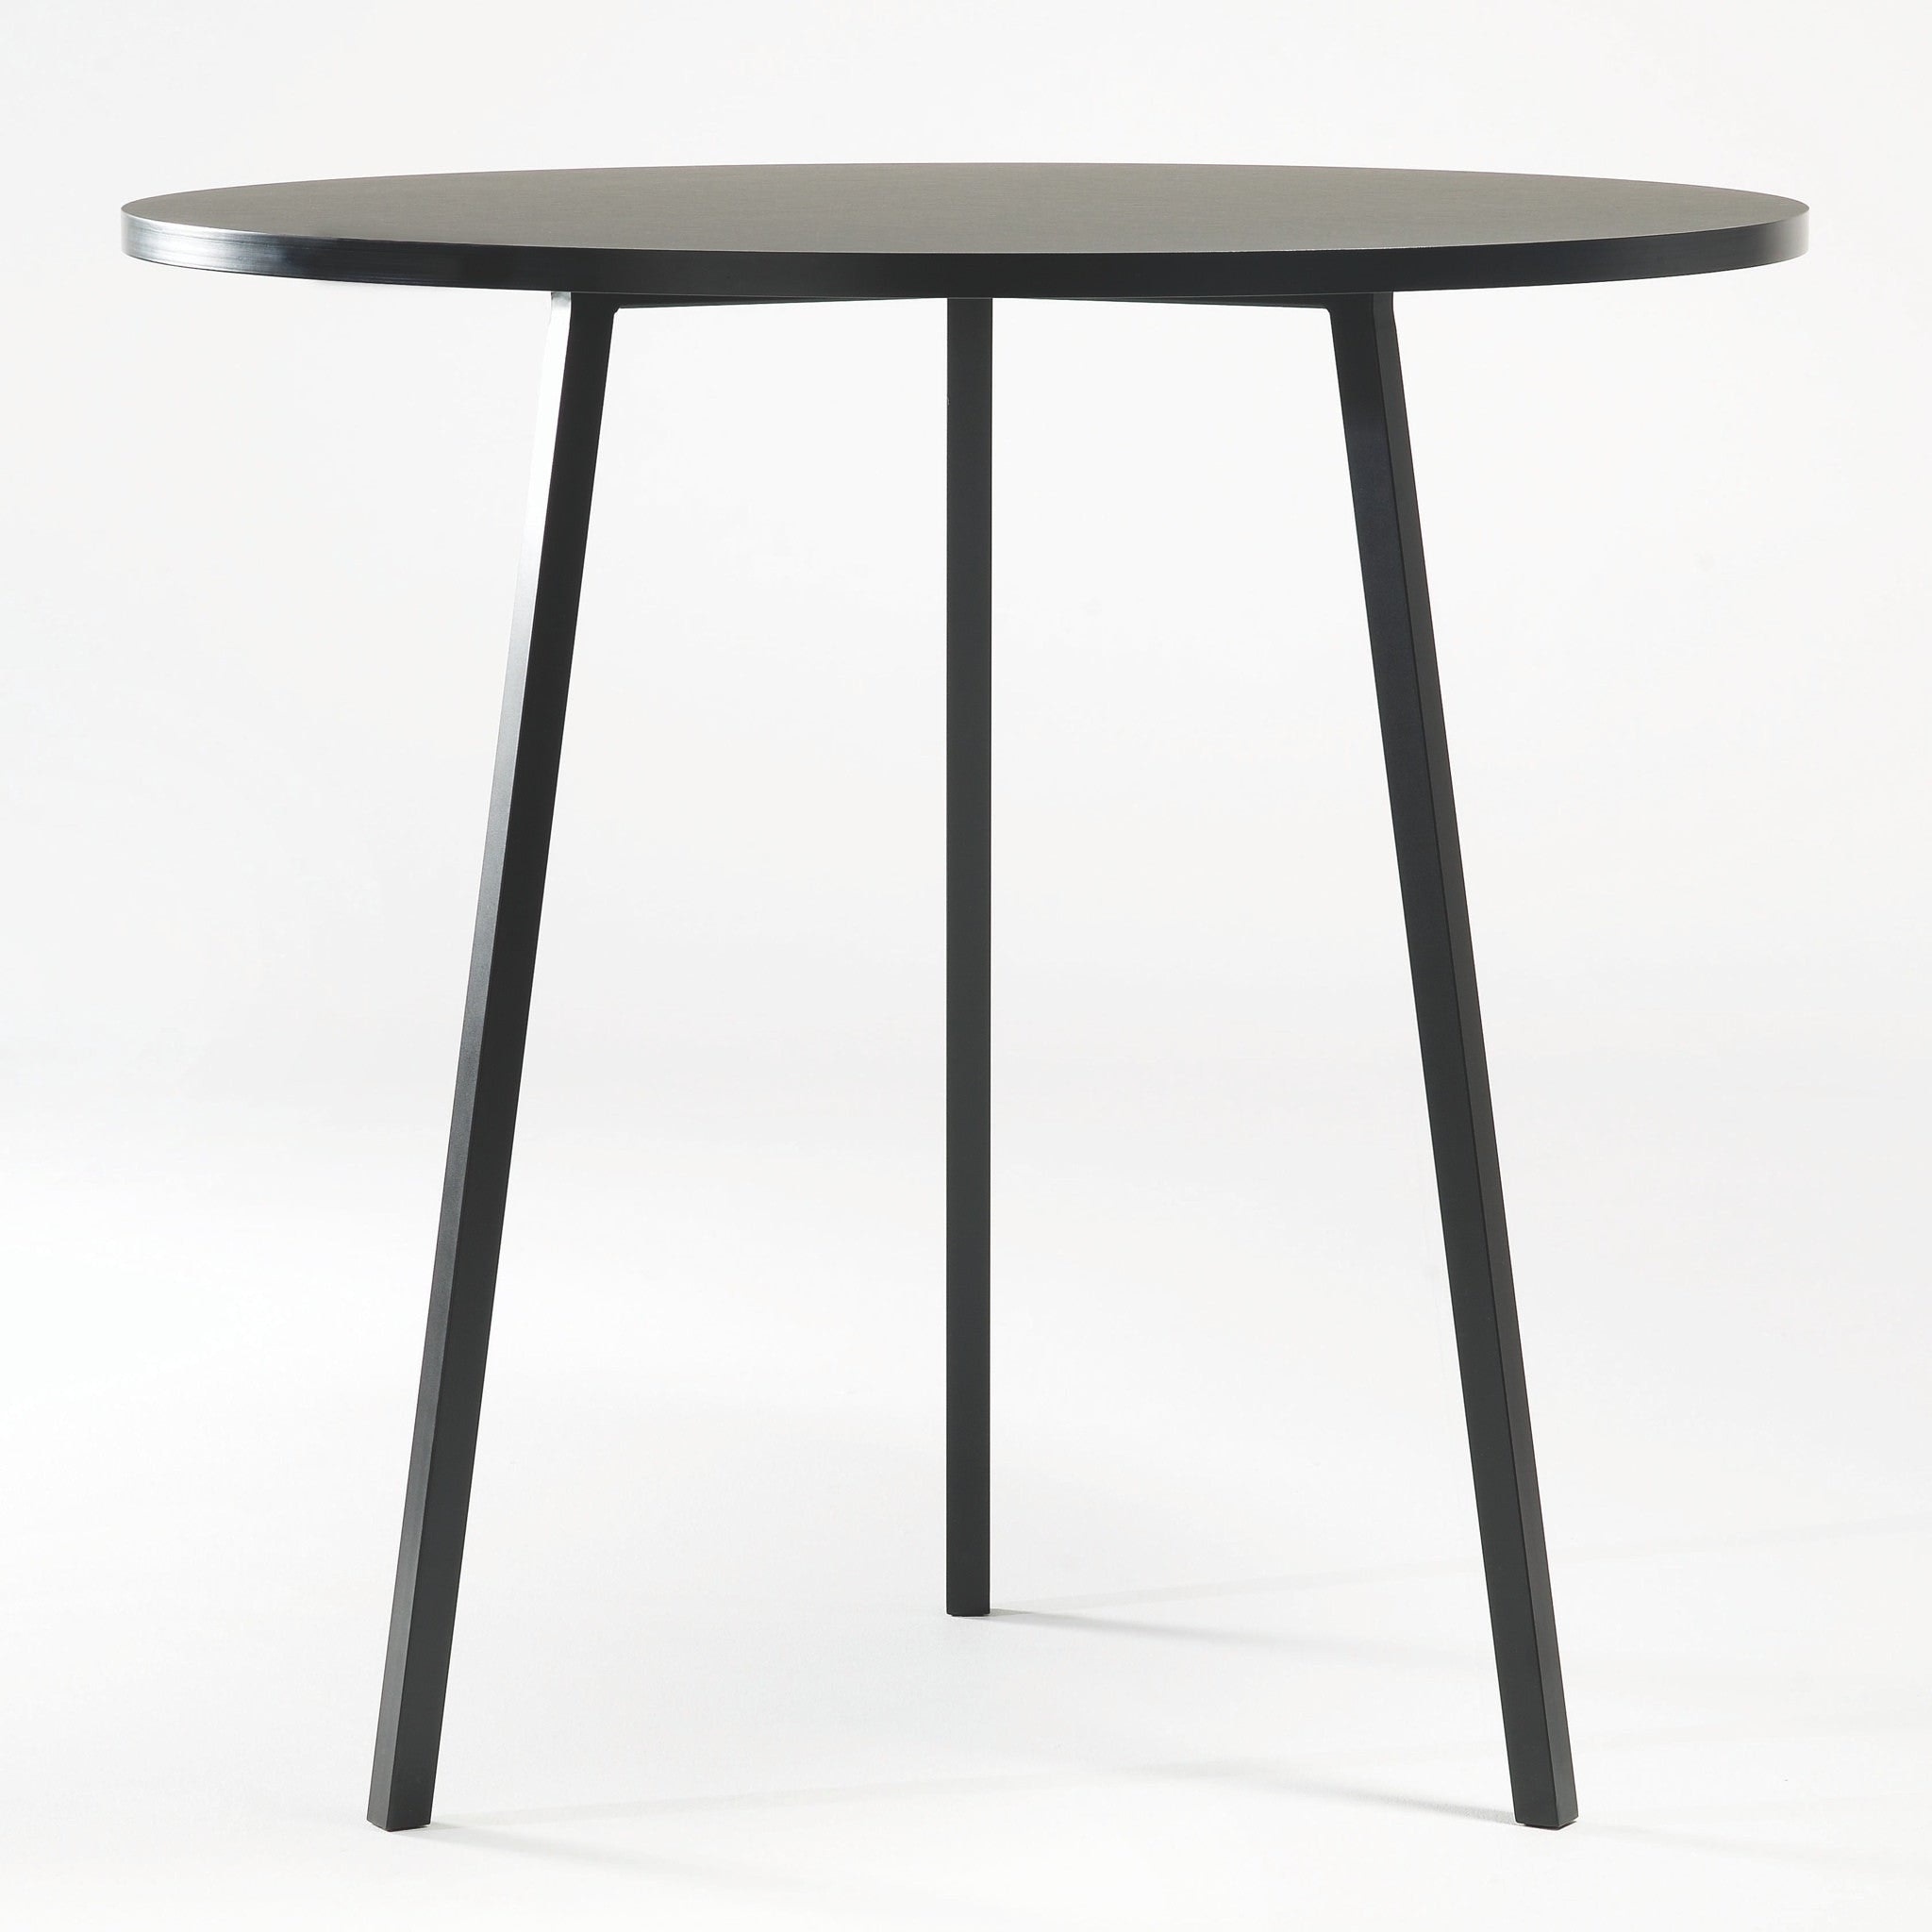 Loop Stand Round Table by Hay